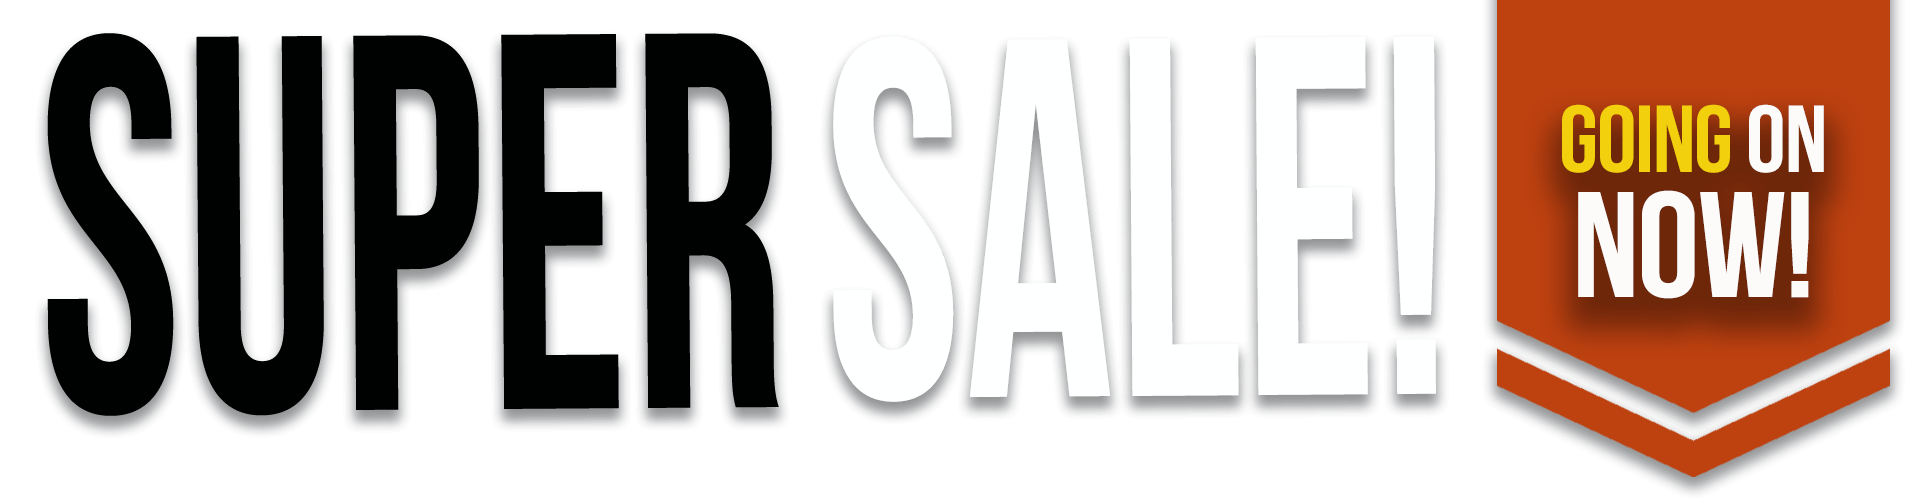 SUPER SALE! GOING ON NOW!